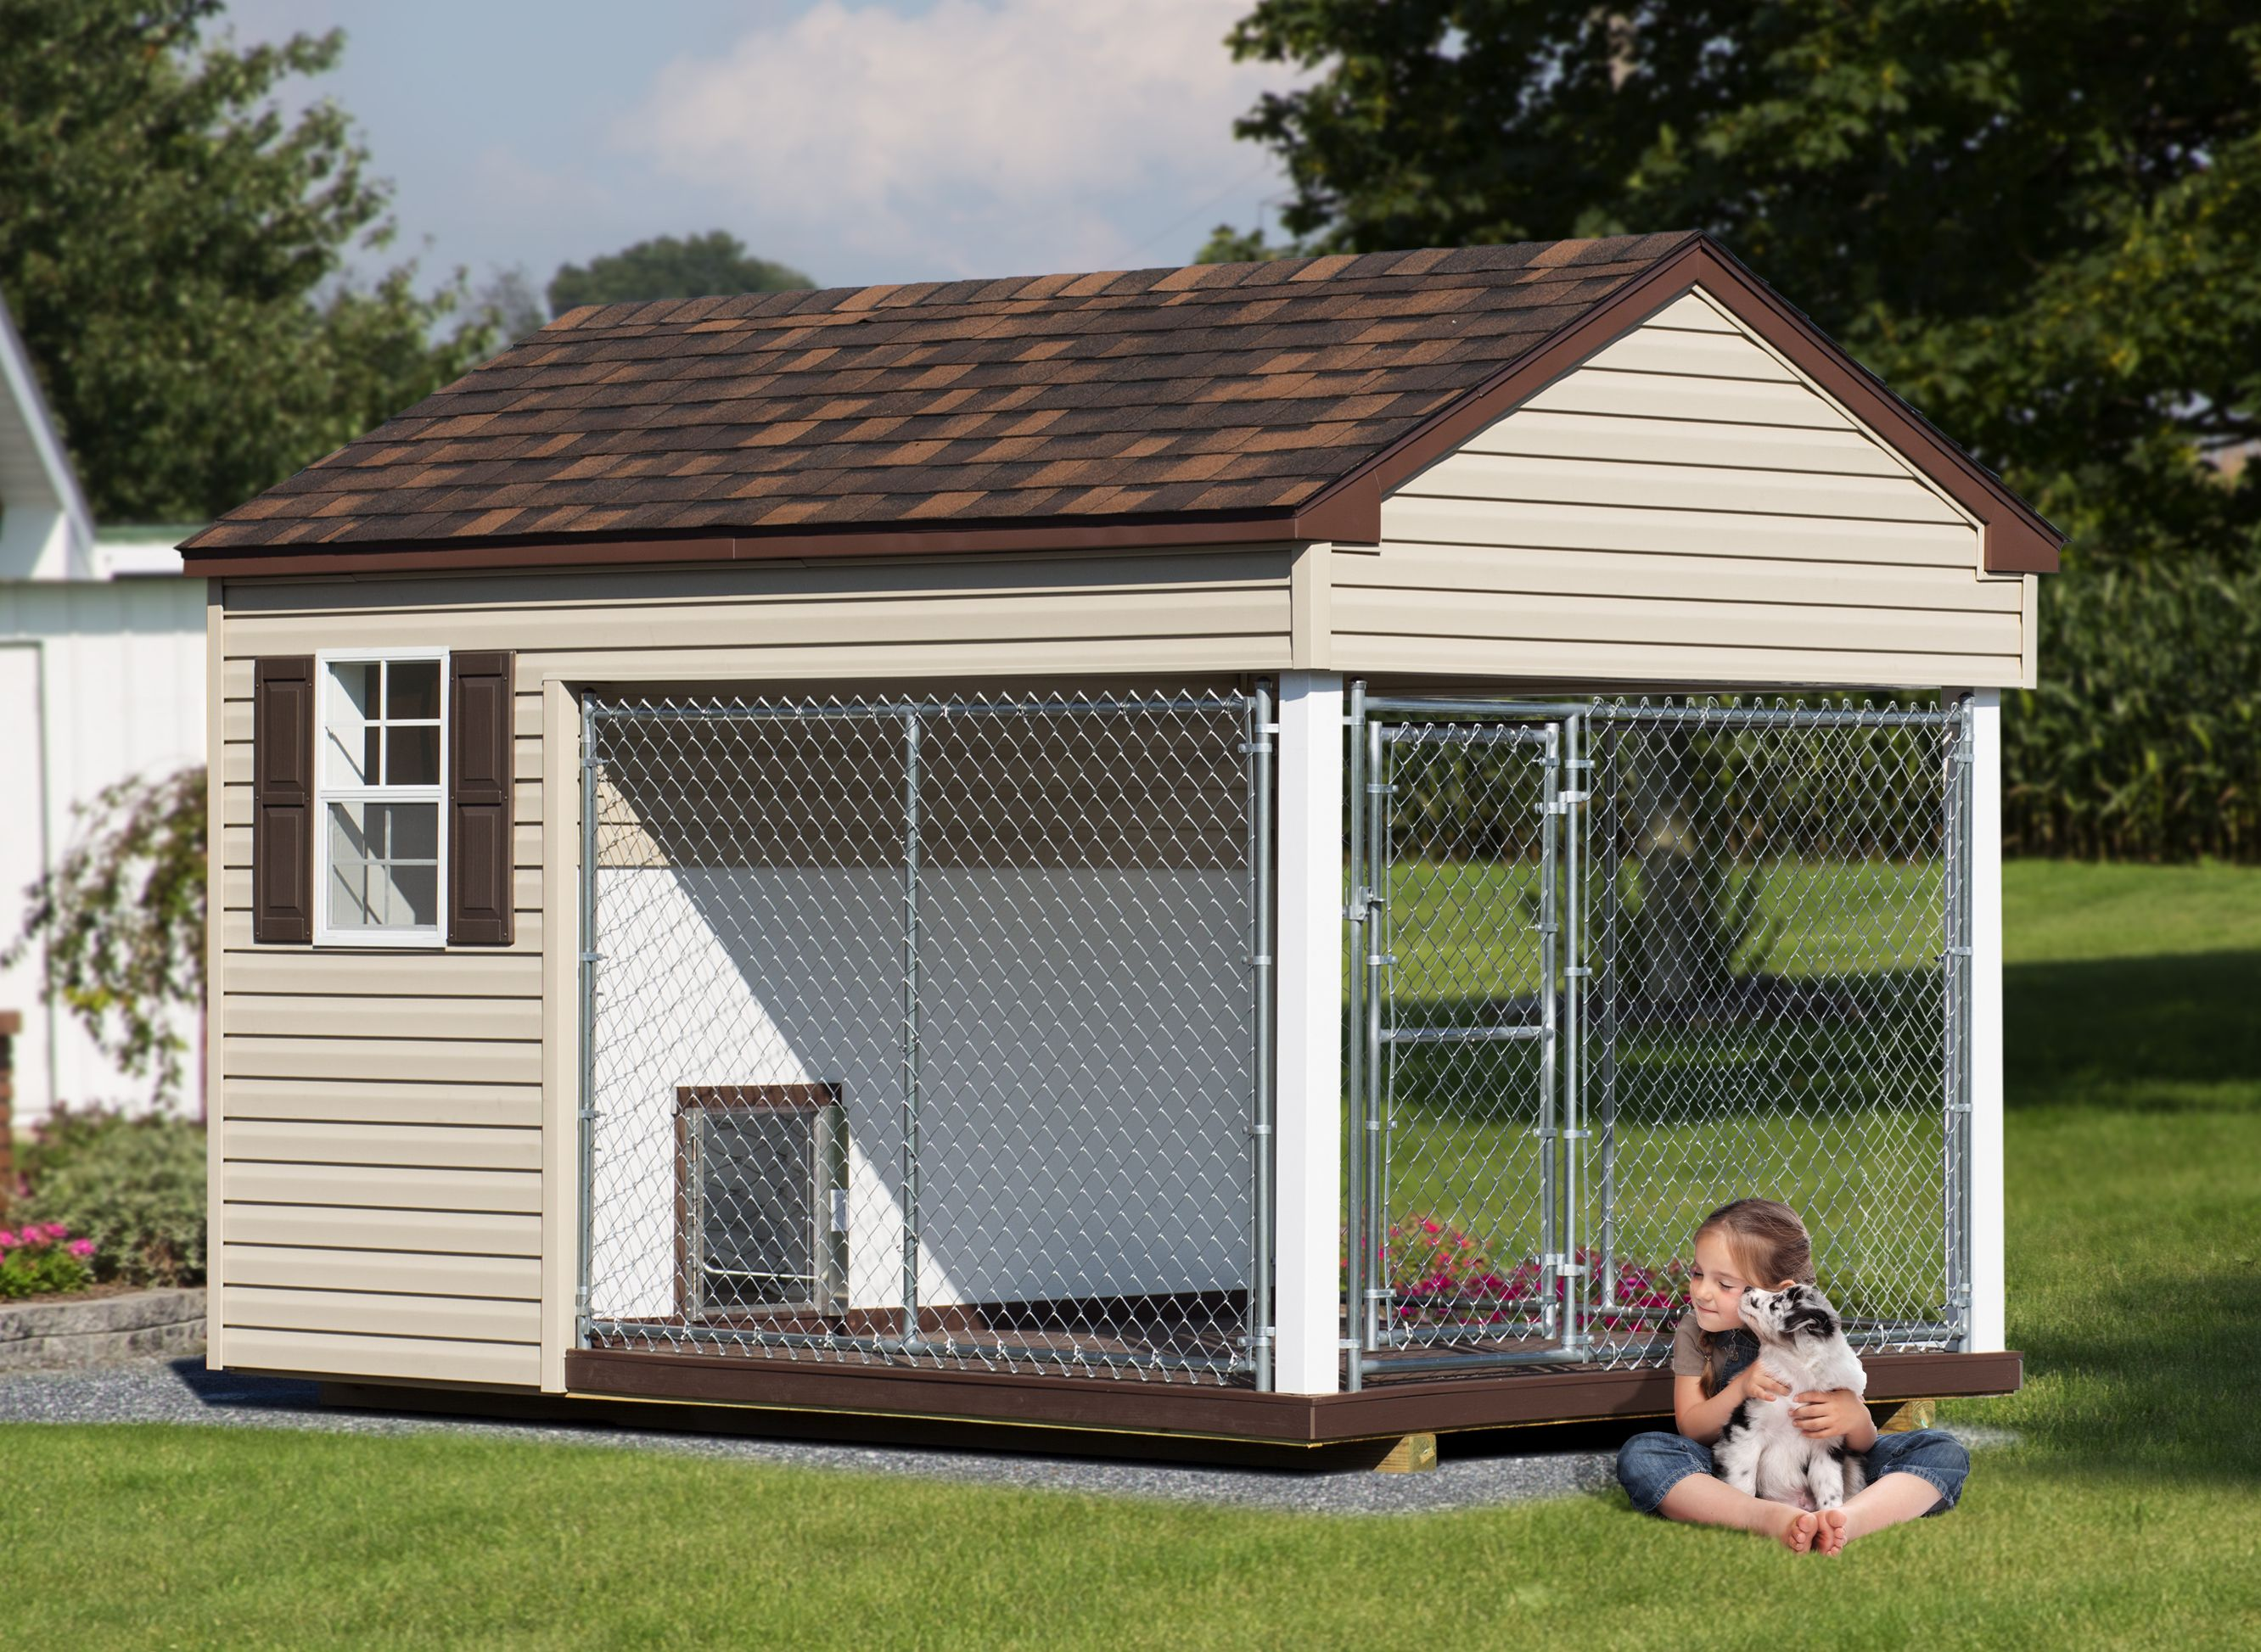 Large Dog Kennels For Outside From The Dog Kennel Collection Dog Kennel Dog Kennel Outdoor Outdoor Dog